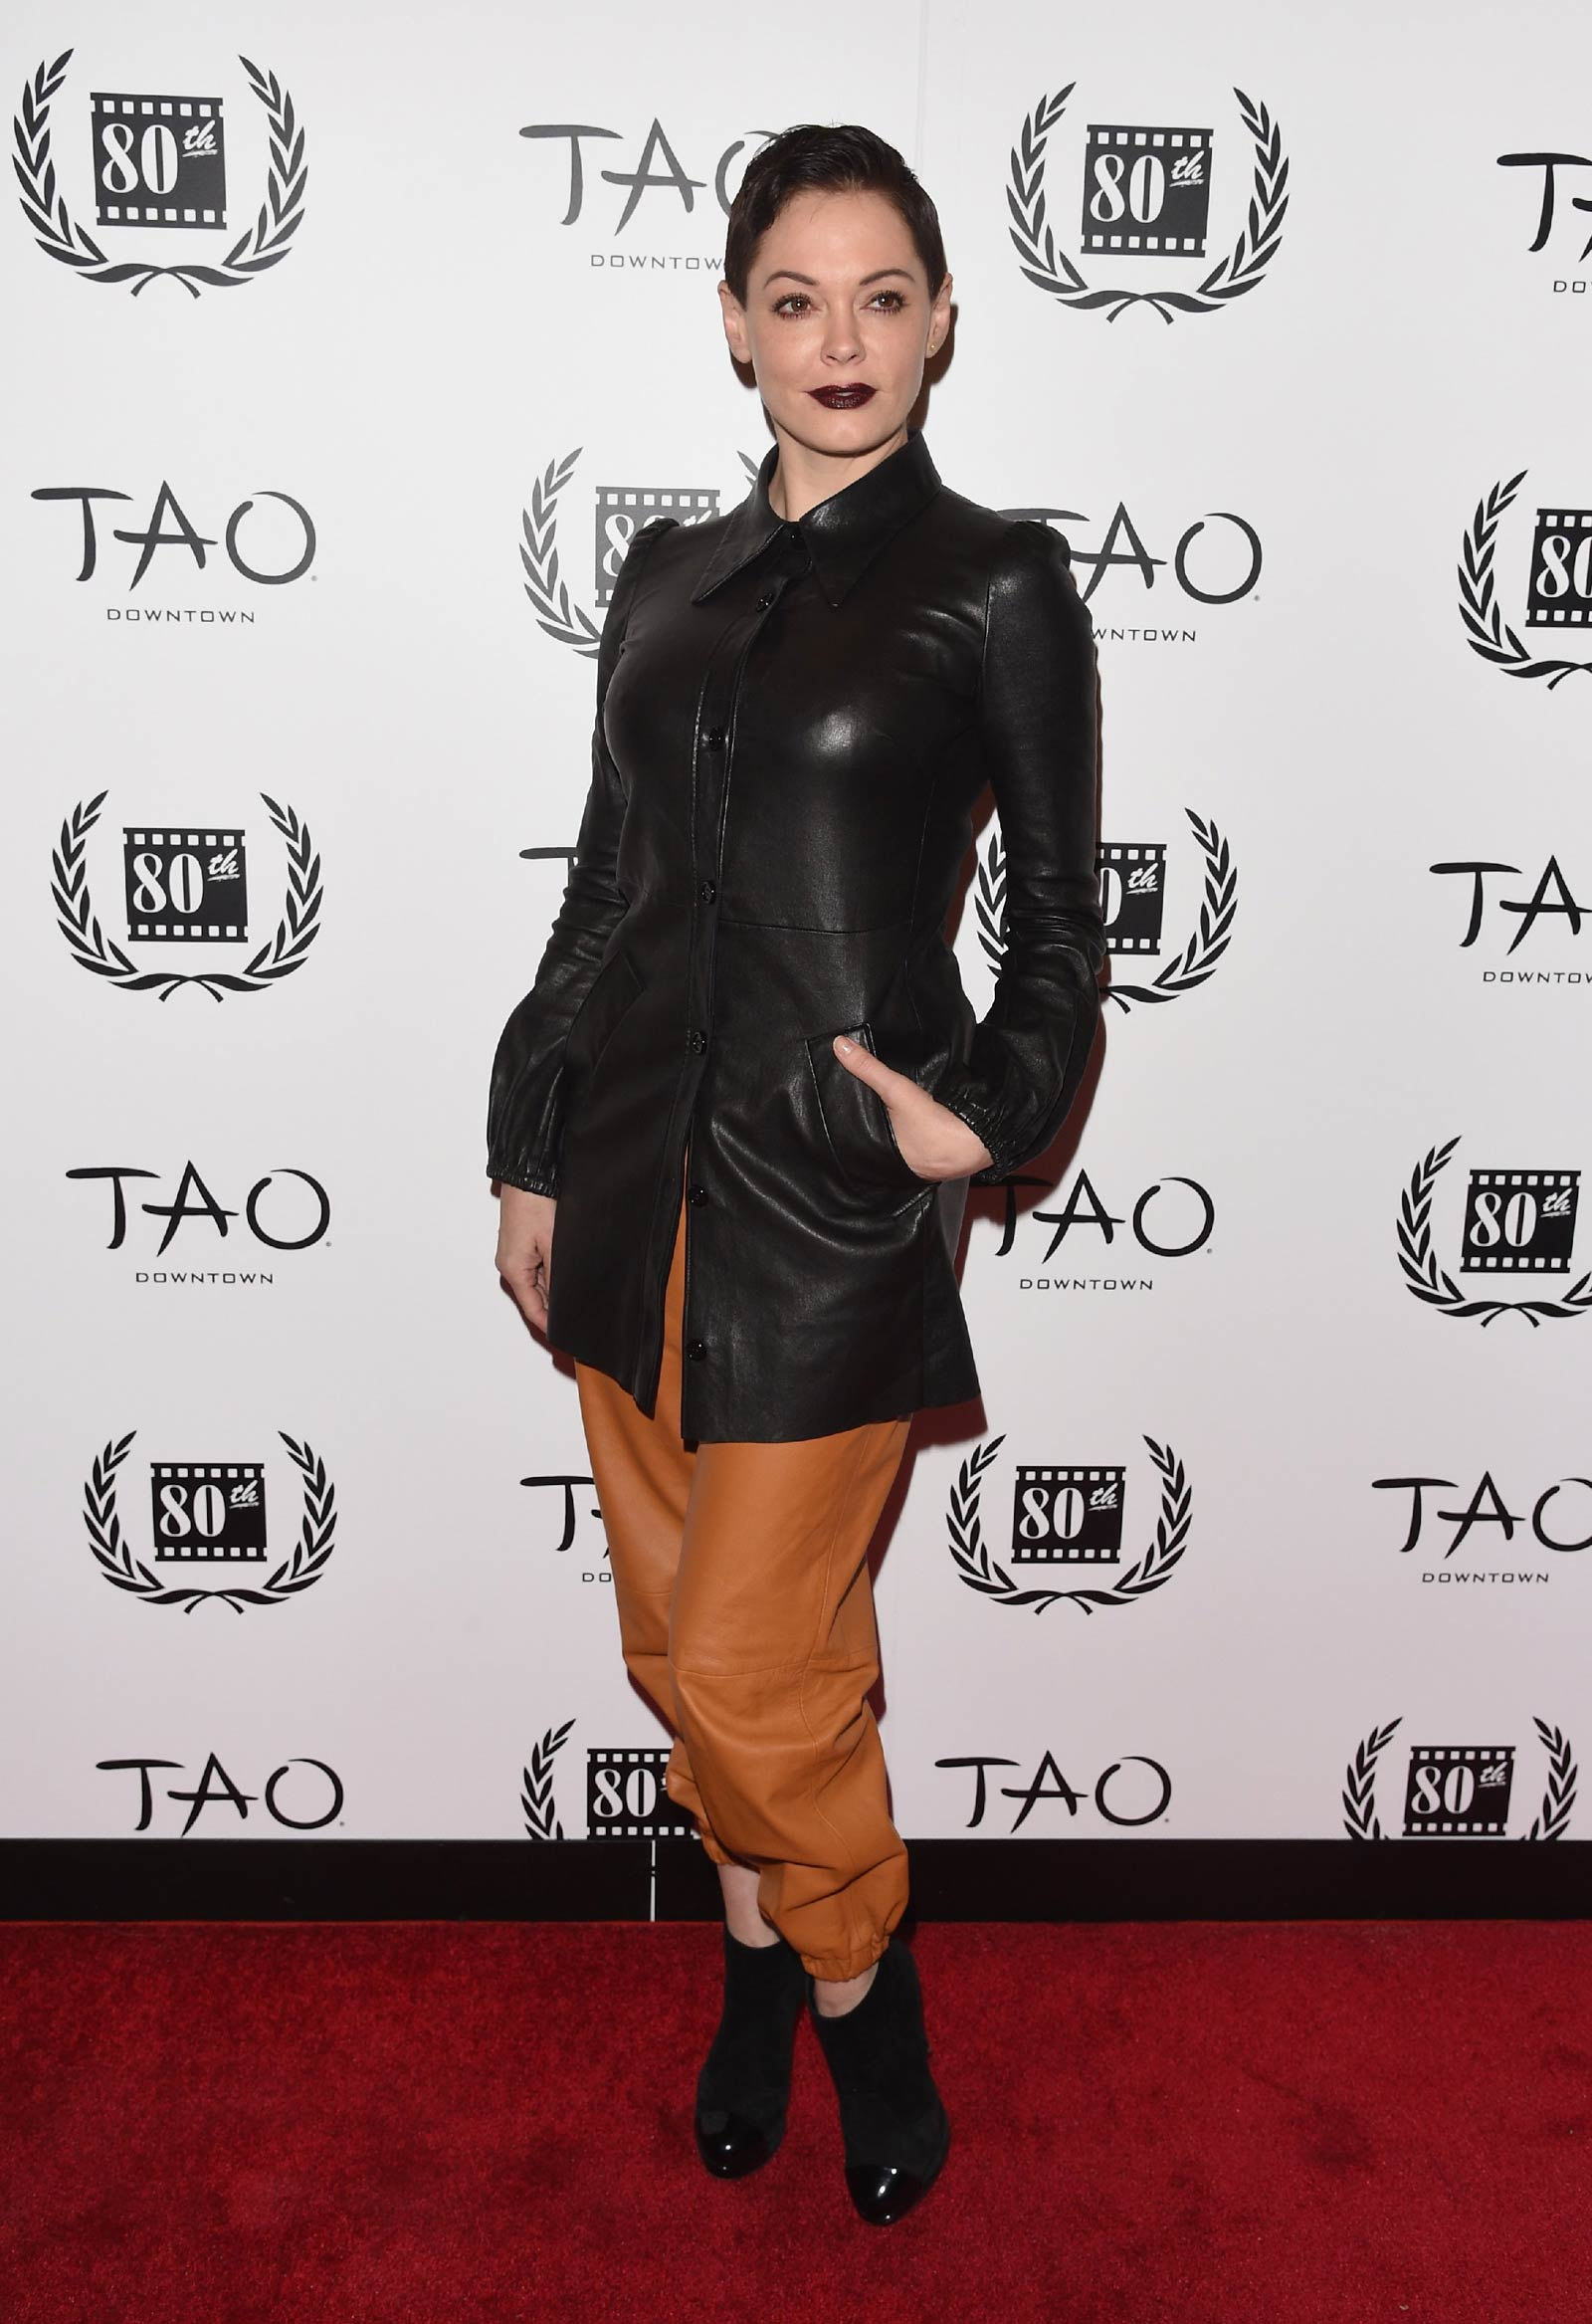 Rose McGowan attends NY Film Critics Circle Awards